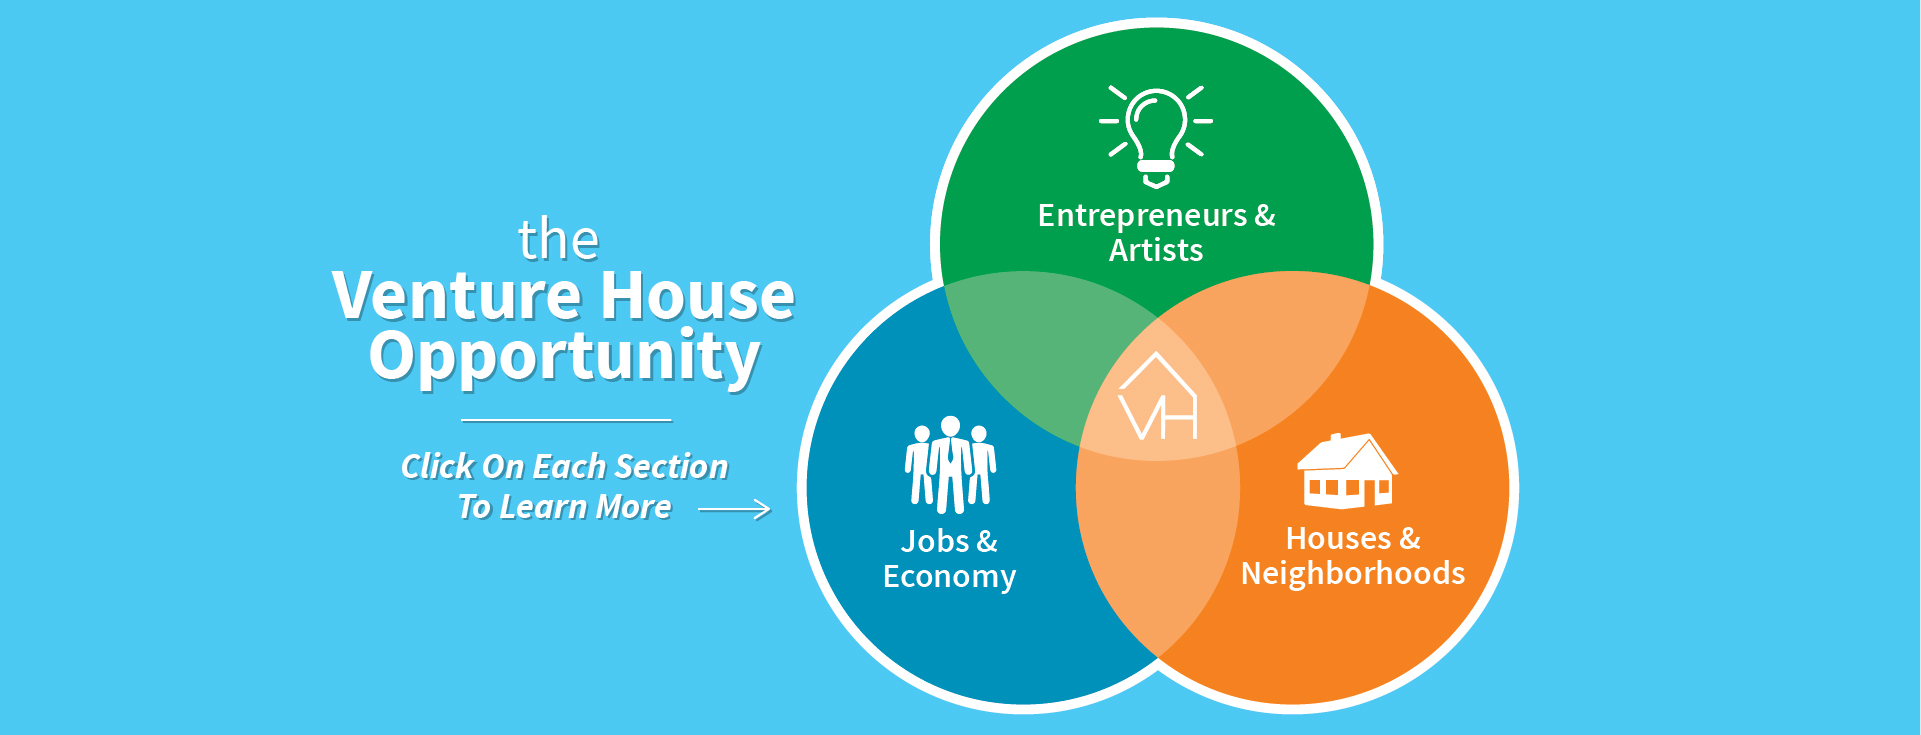 VentureHouse-Slide-VennDiagram